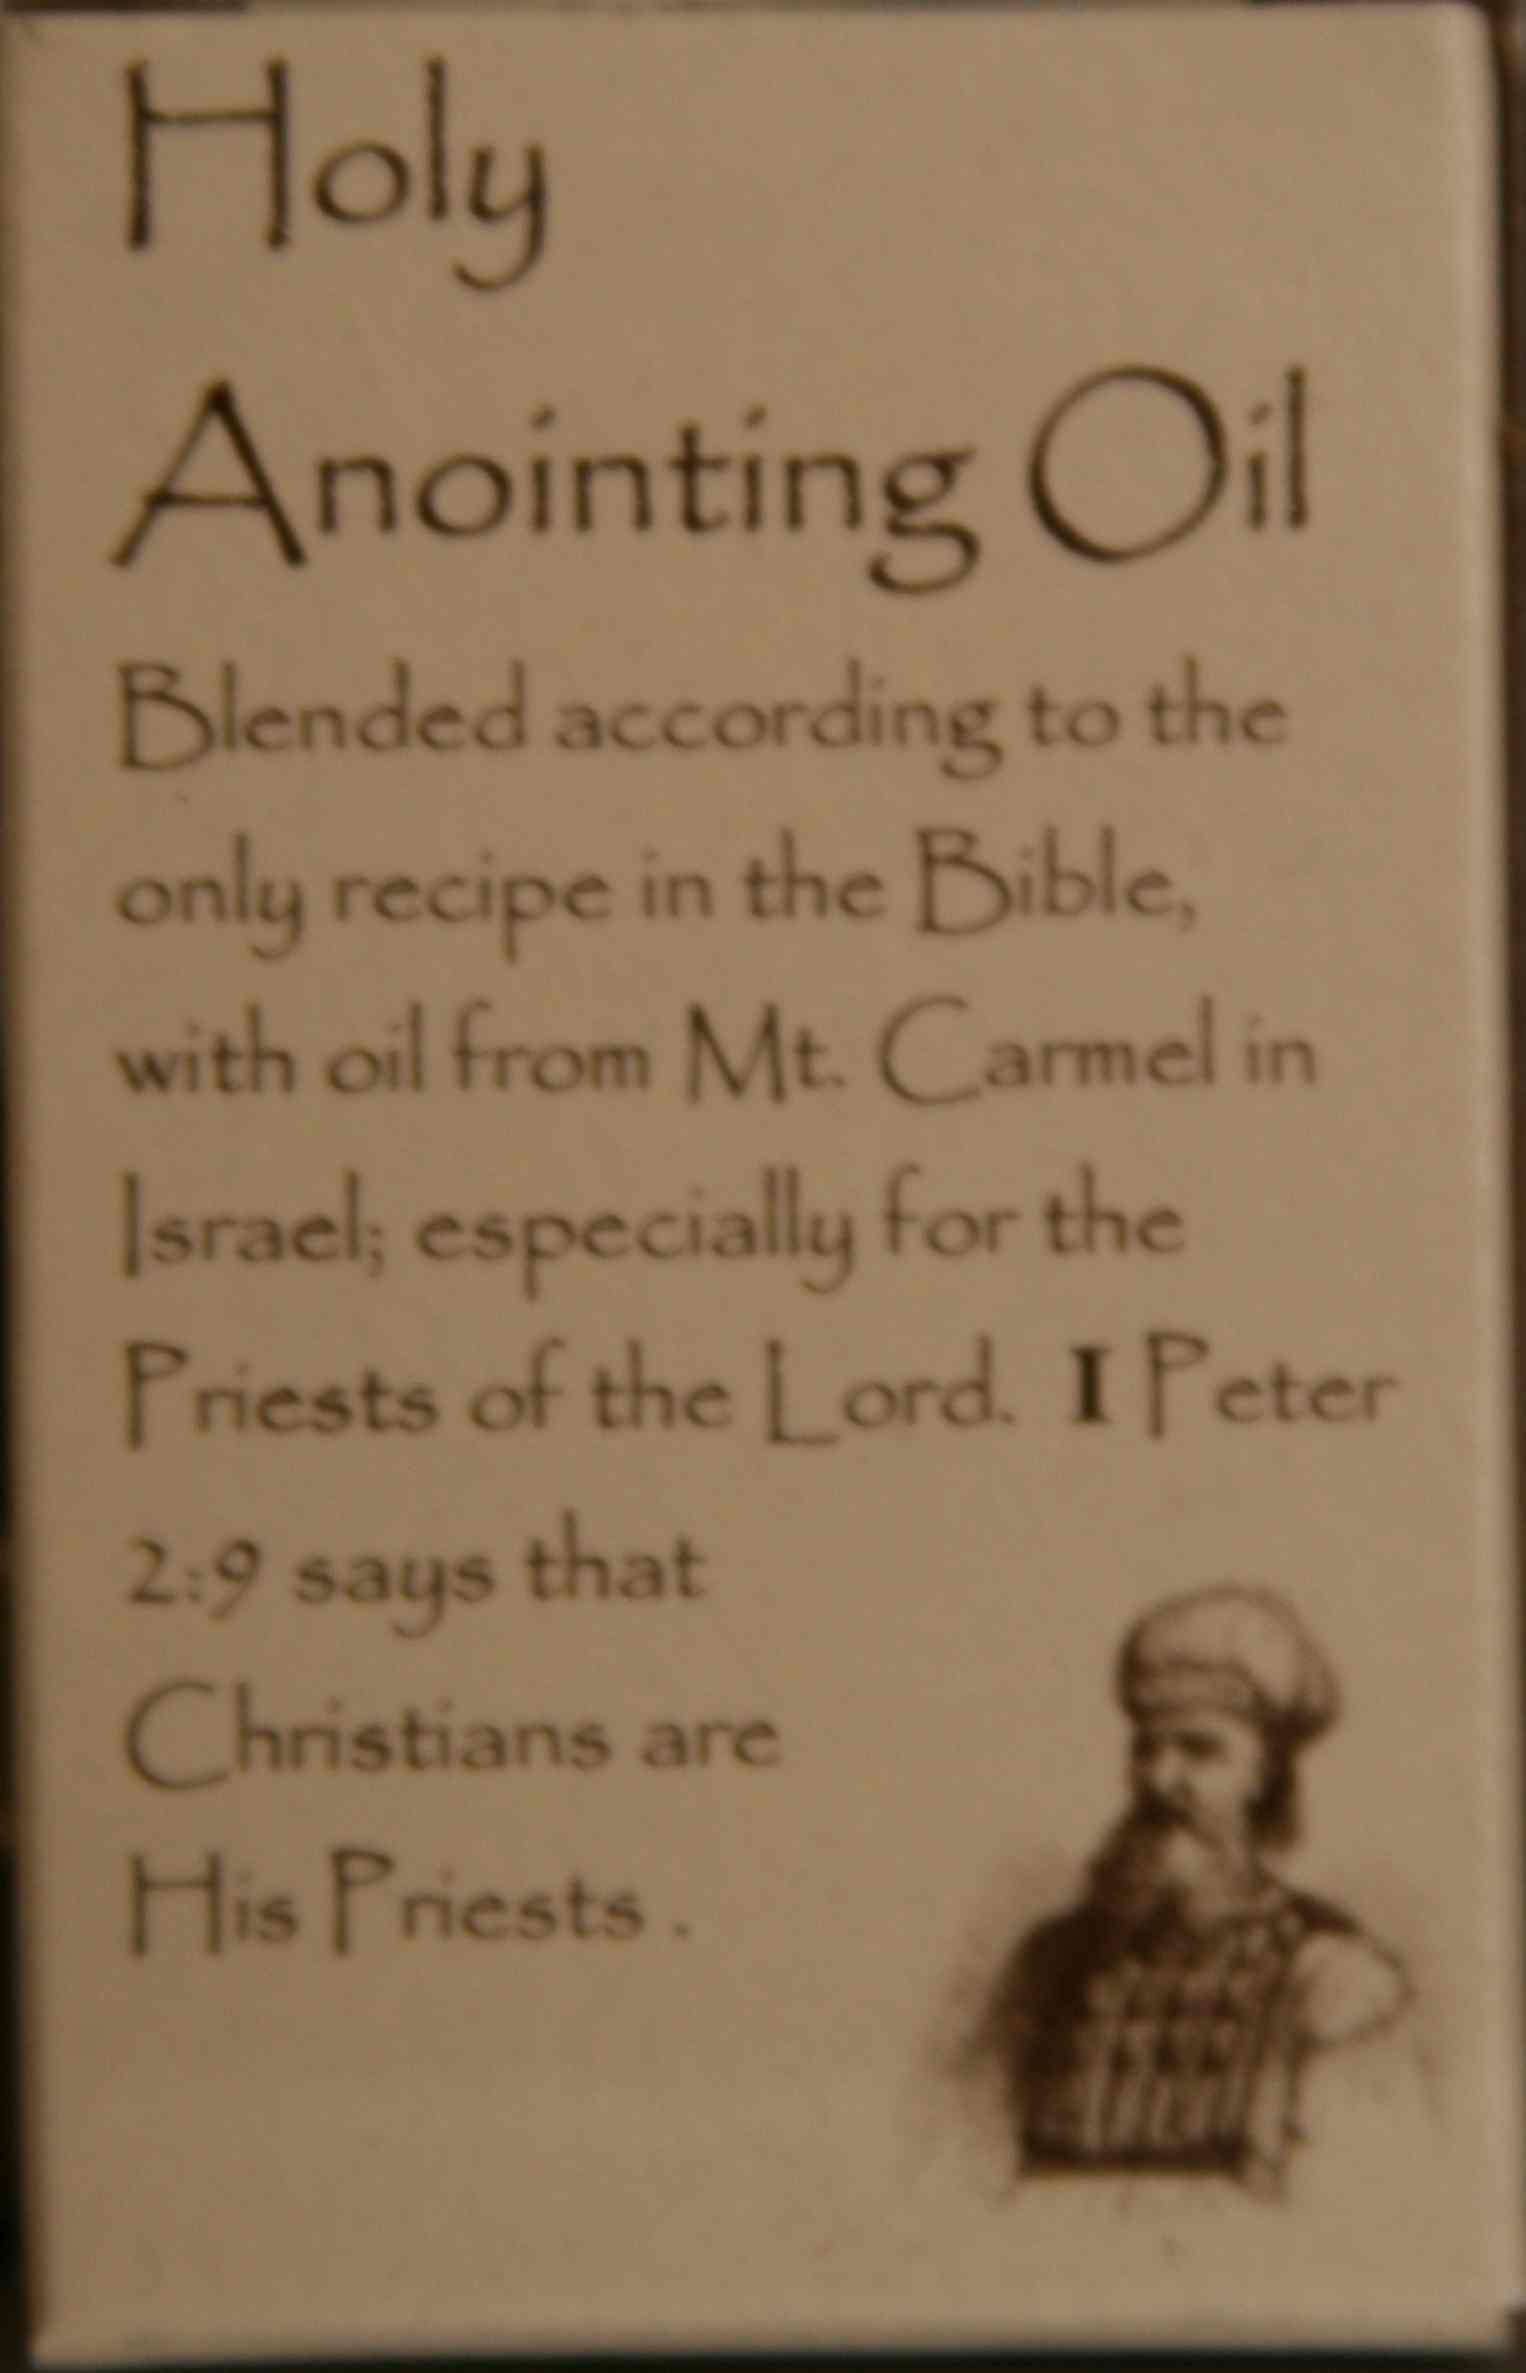 how to make holy oil